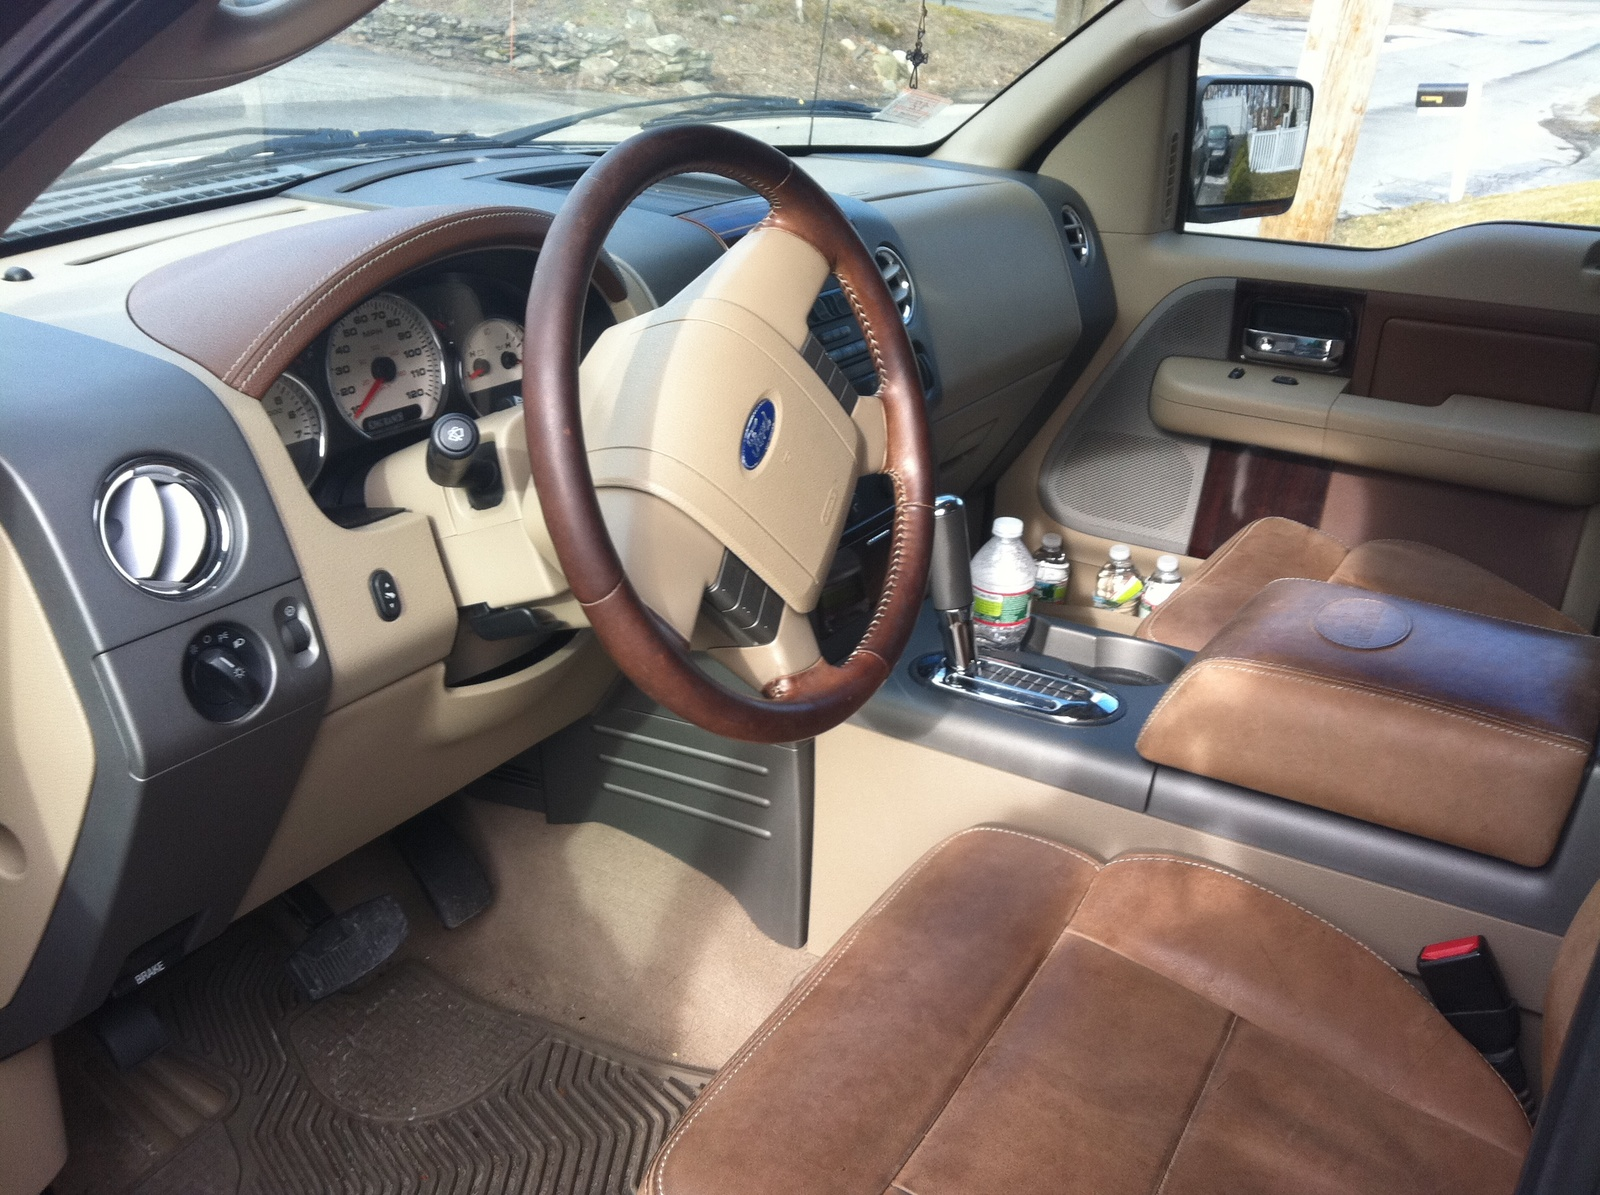 2005 Ford F150 King Ranch Interior Image